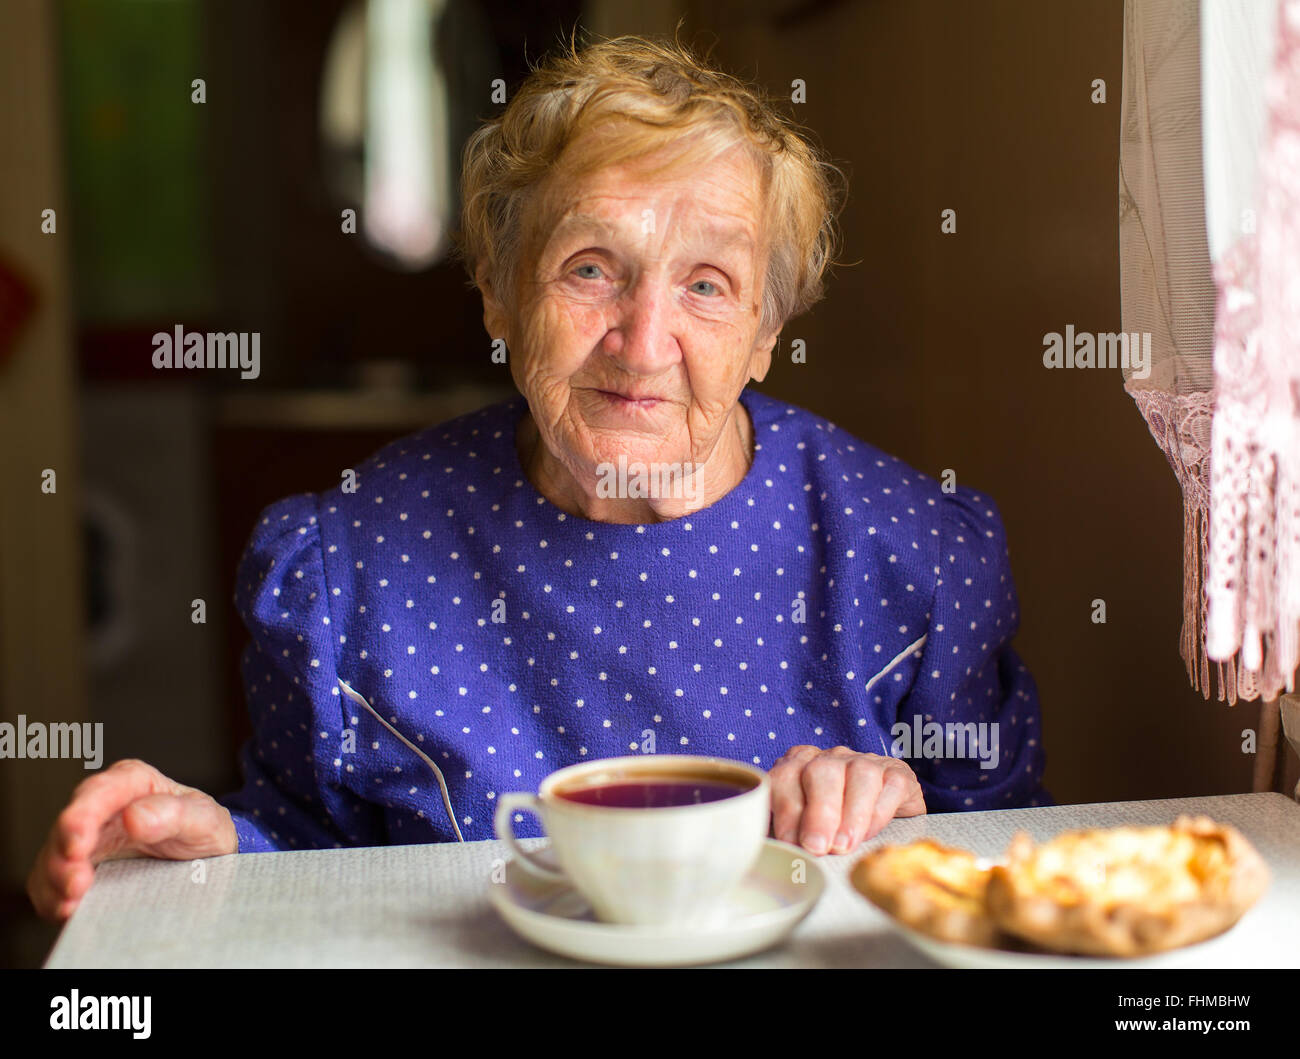 An elderly woman sitting in the kitchen drinking tea. - Stock Image